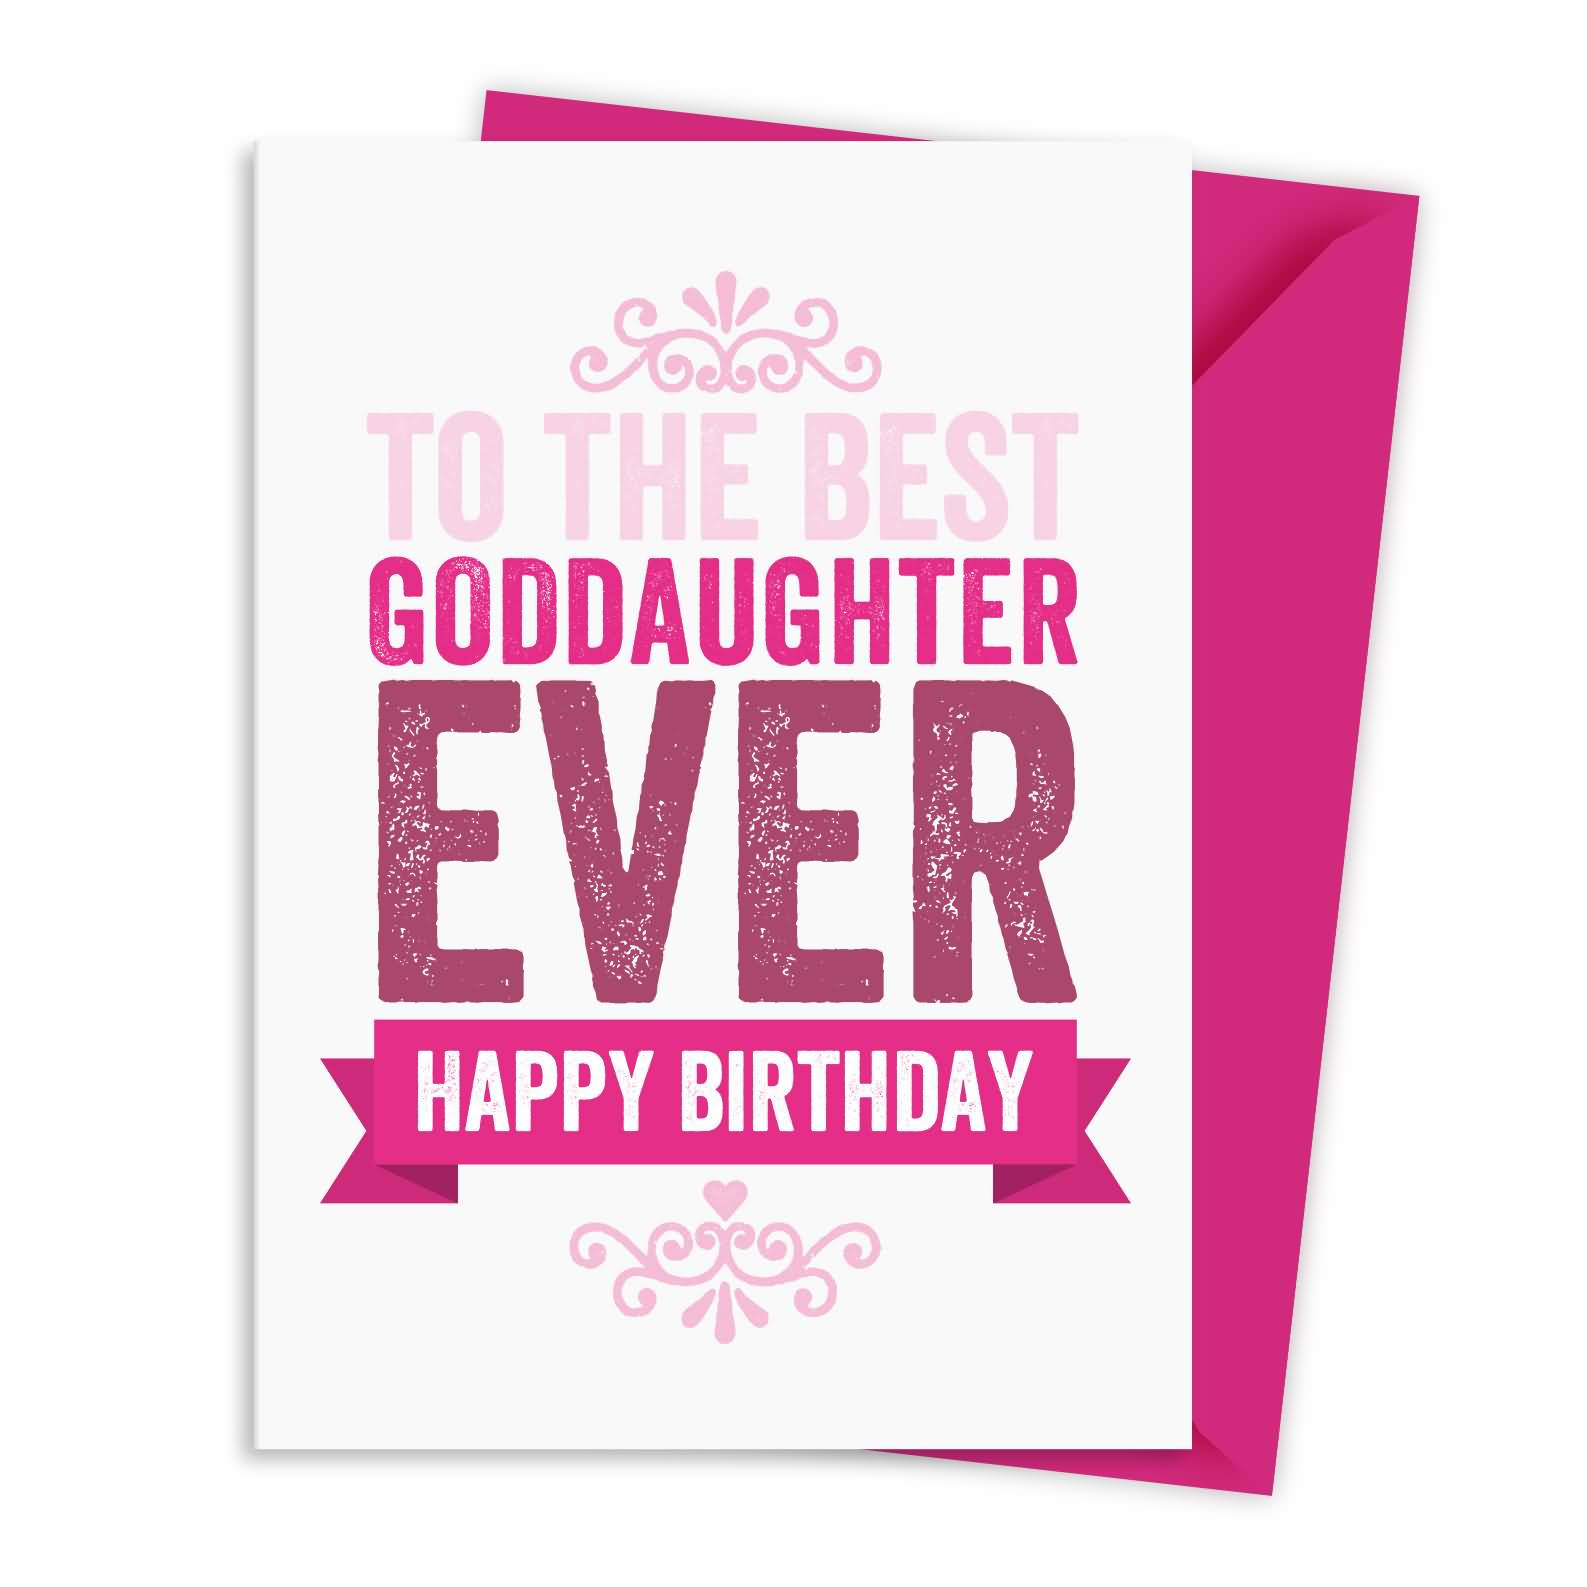 happy birthday goddaughter quotes ; to-the-best-goddaughter-ever-happy-birthday